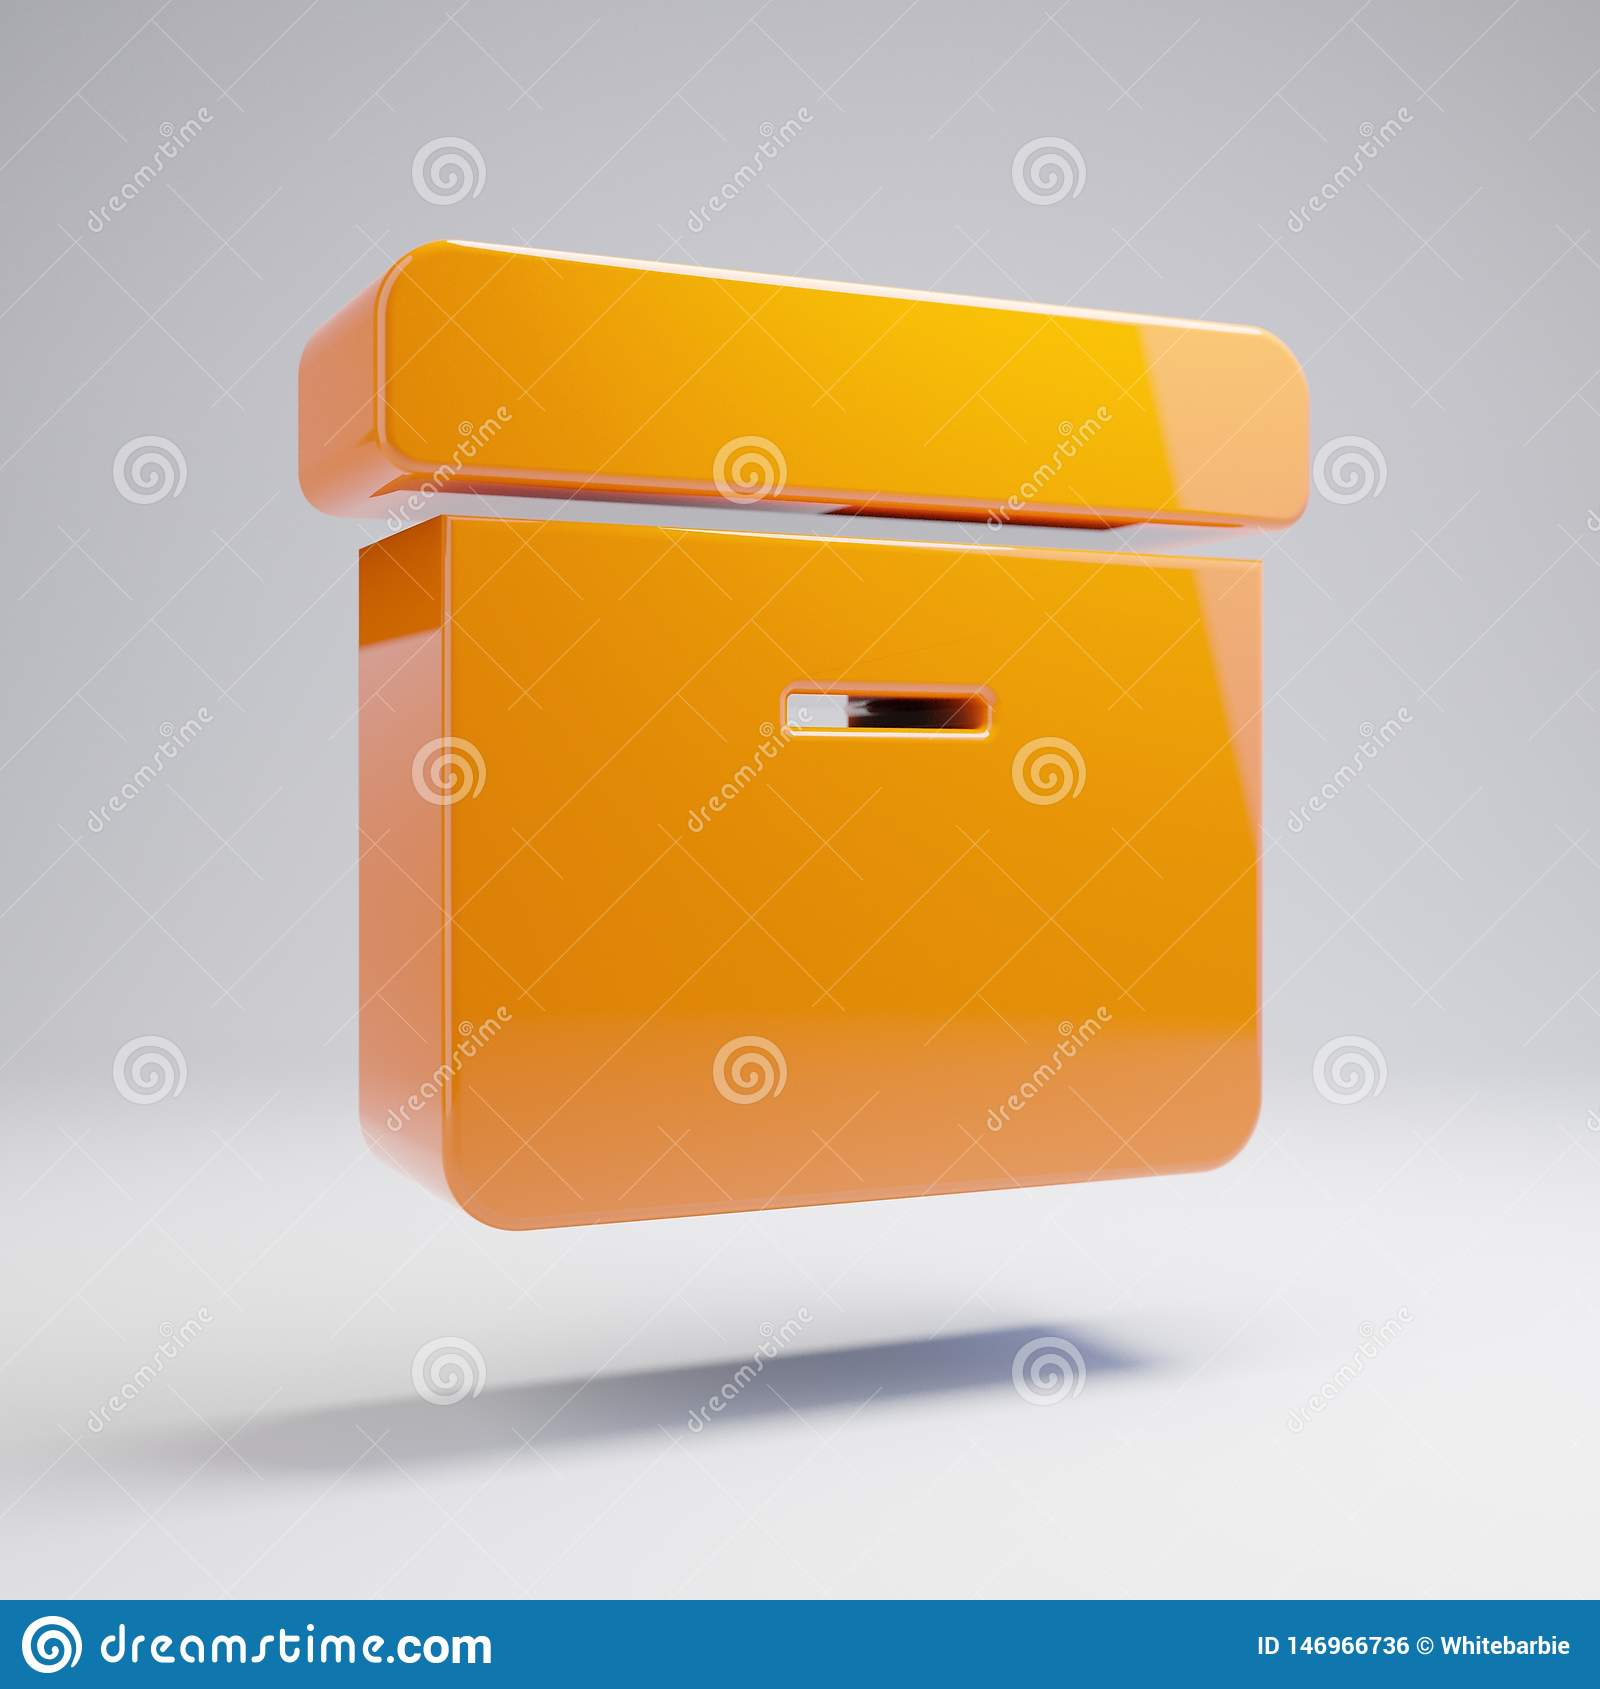 Volumetric glossy hot orange Archive icon isolated on white background